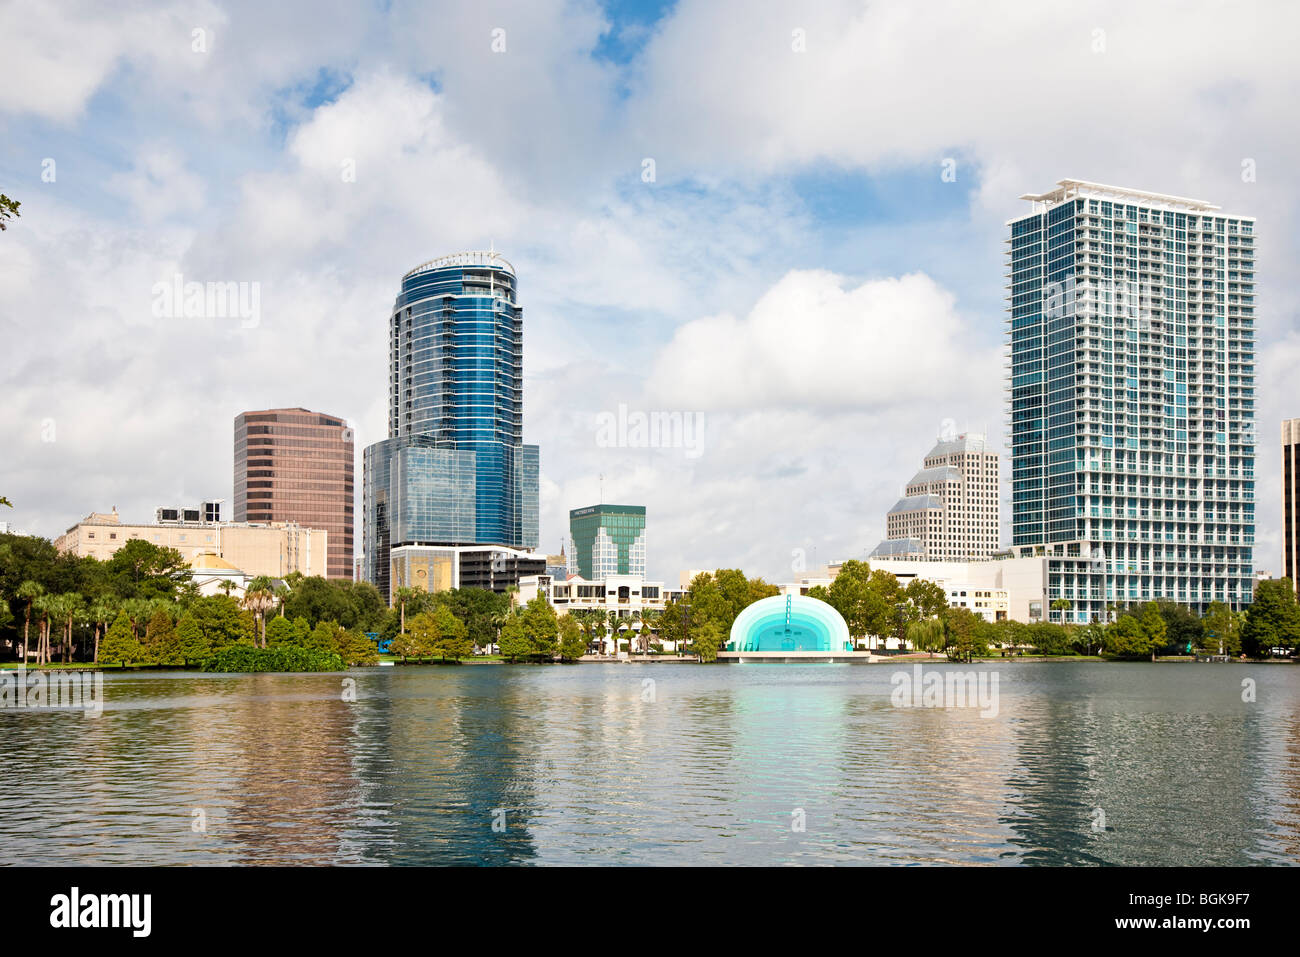 Orlando, FL - Aug 2008 - Modern architecture and bandshell on Lake Eola waterfront in downtown Orlando, Florida - Stock Image